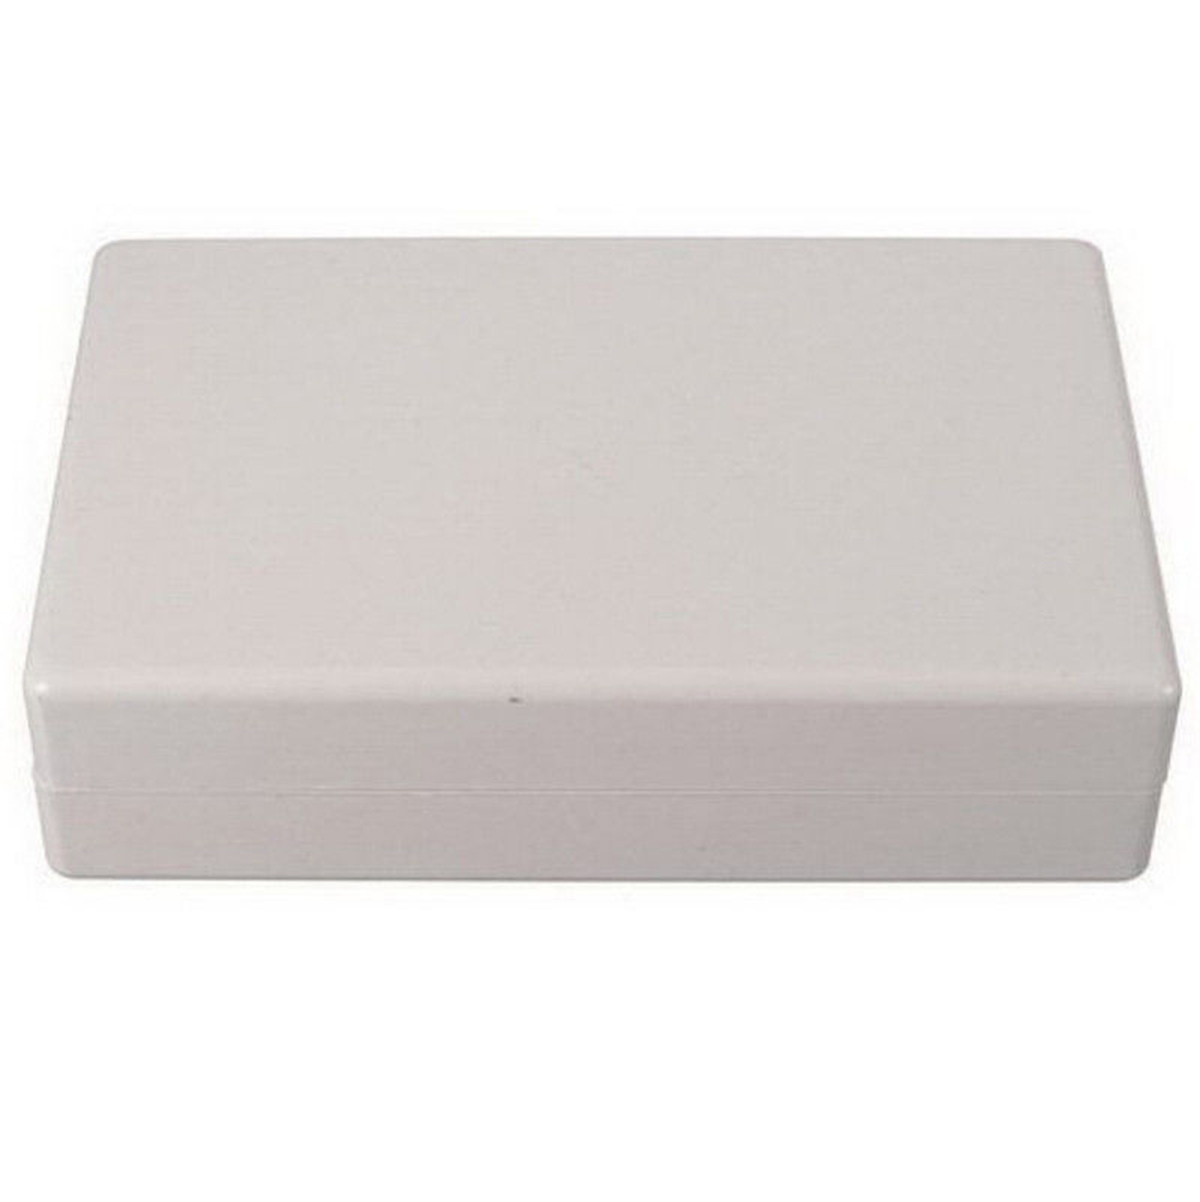 1pc Plastic Electronic Project Case Cover Waterproof Enclosure Box 125x80x32mm Mayitr For Power Supply Units electronic project cover box enclosure case waterproof plastic 85x58x33mm h028